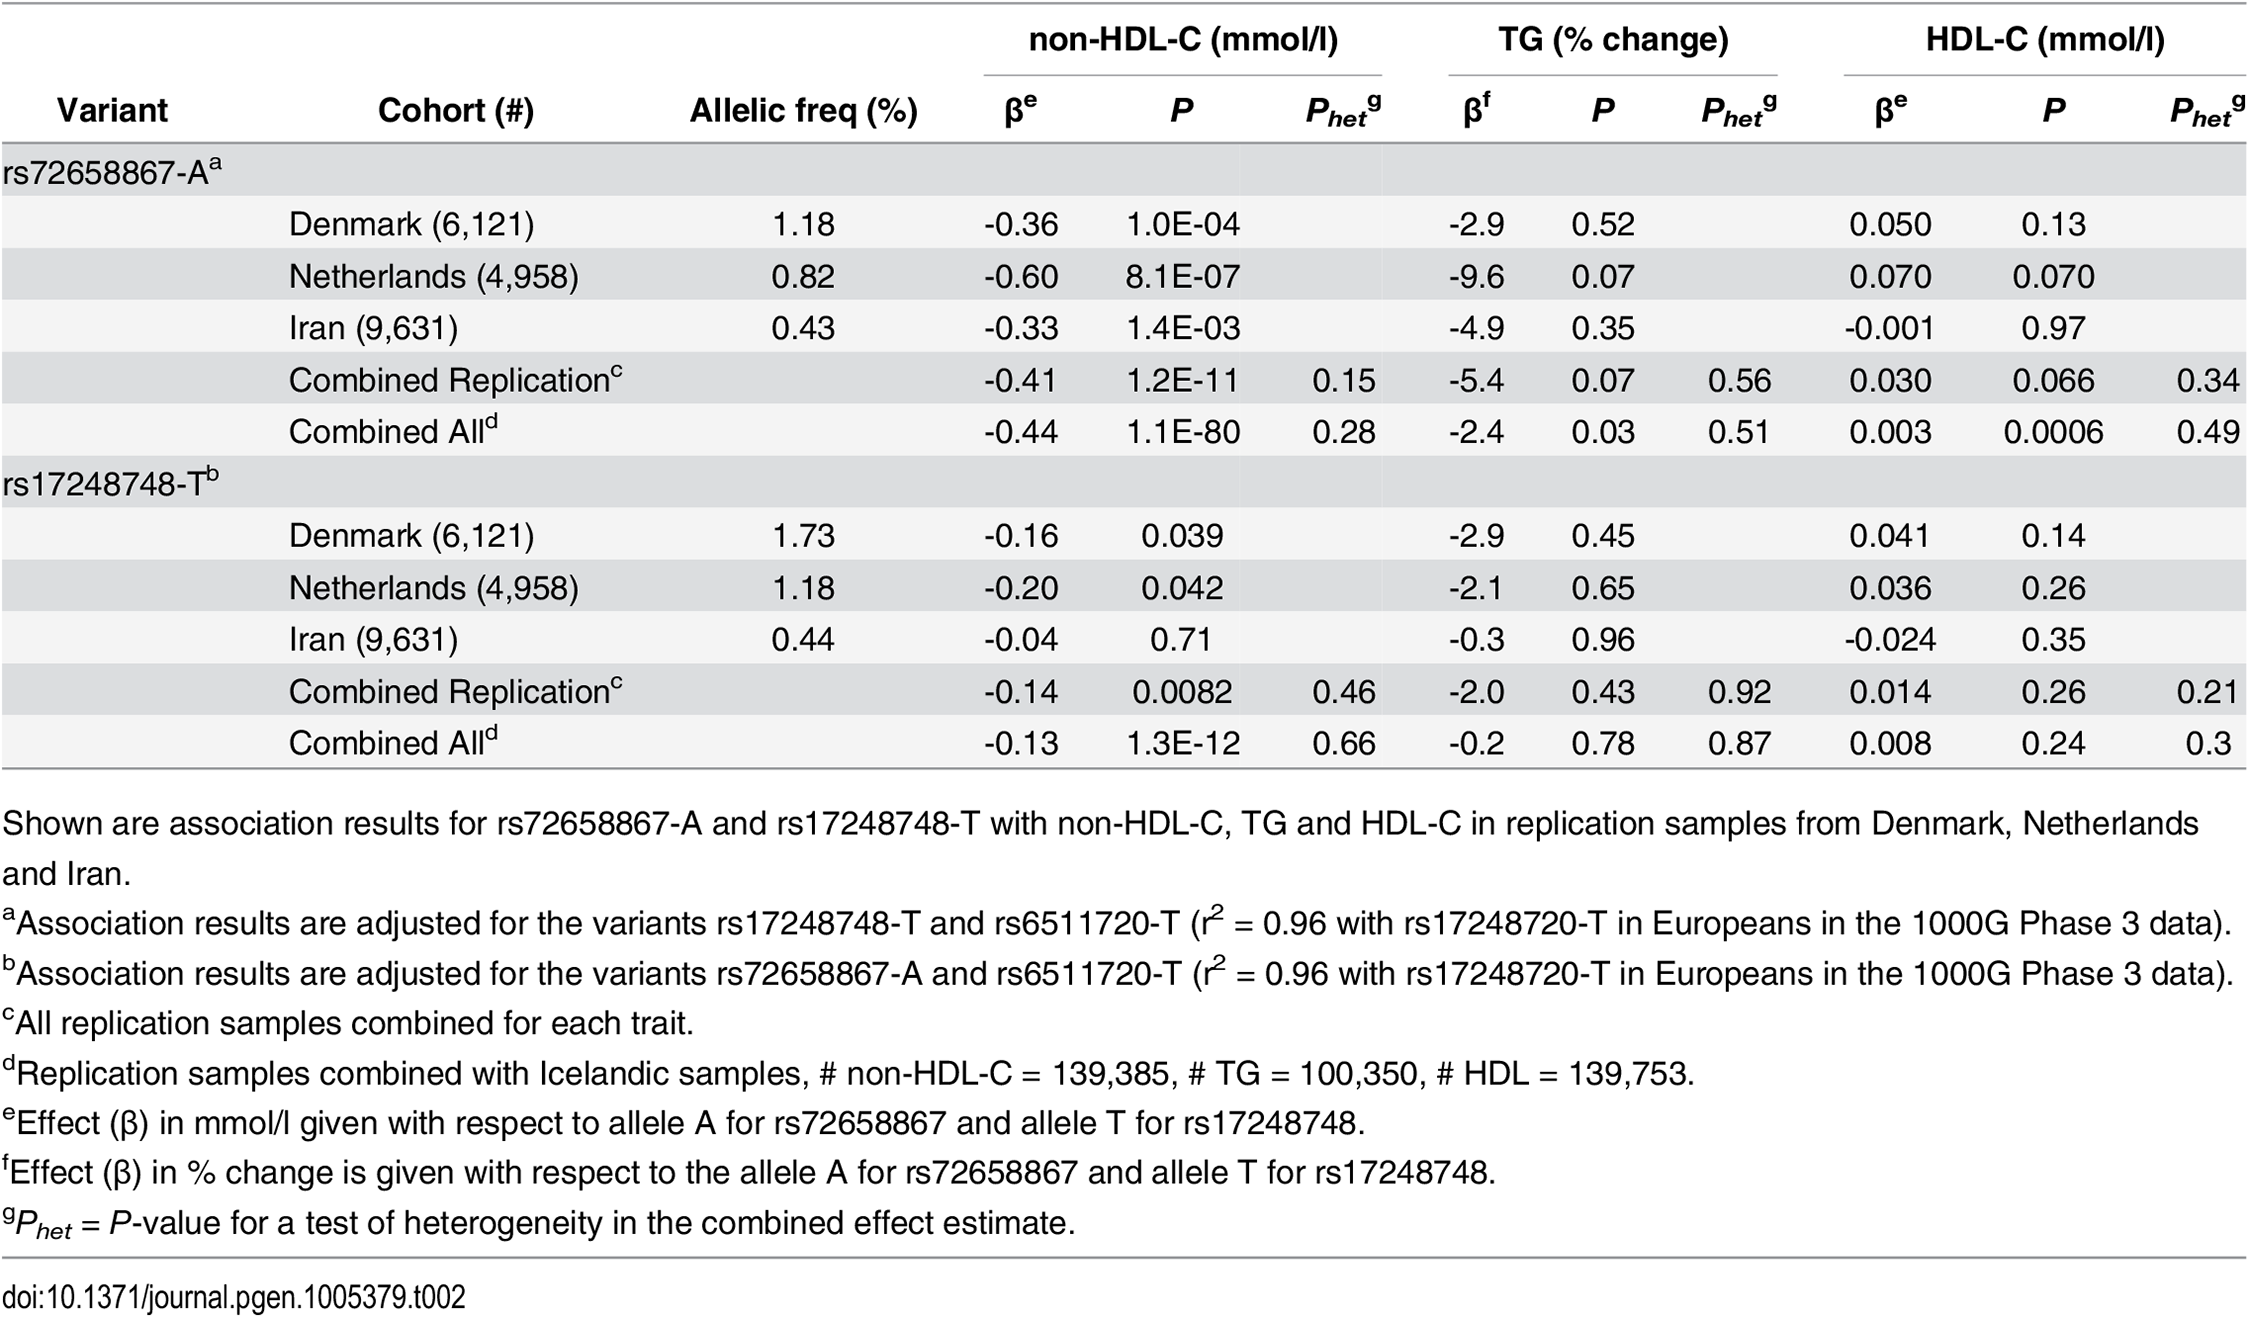 Association of <i>LDLR</i> splice region variant rs72658867-A and intronic variant rs17248748-T with non-HDL-C in Denmark, Netherlands and Iran.